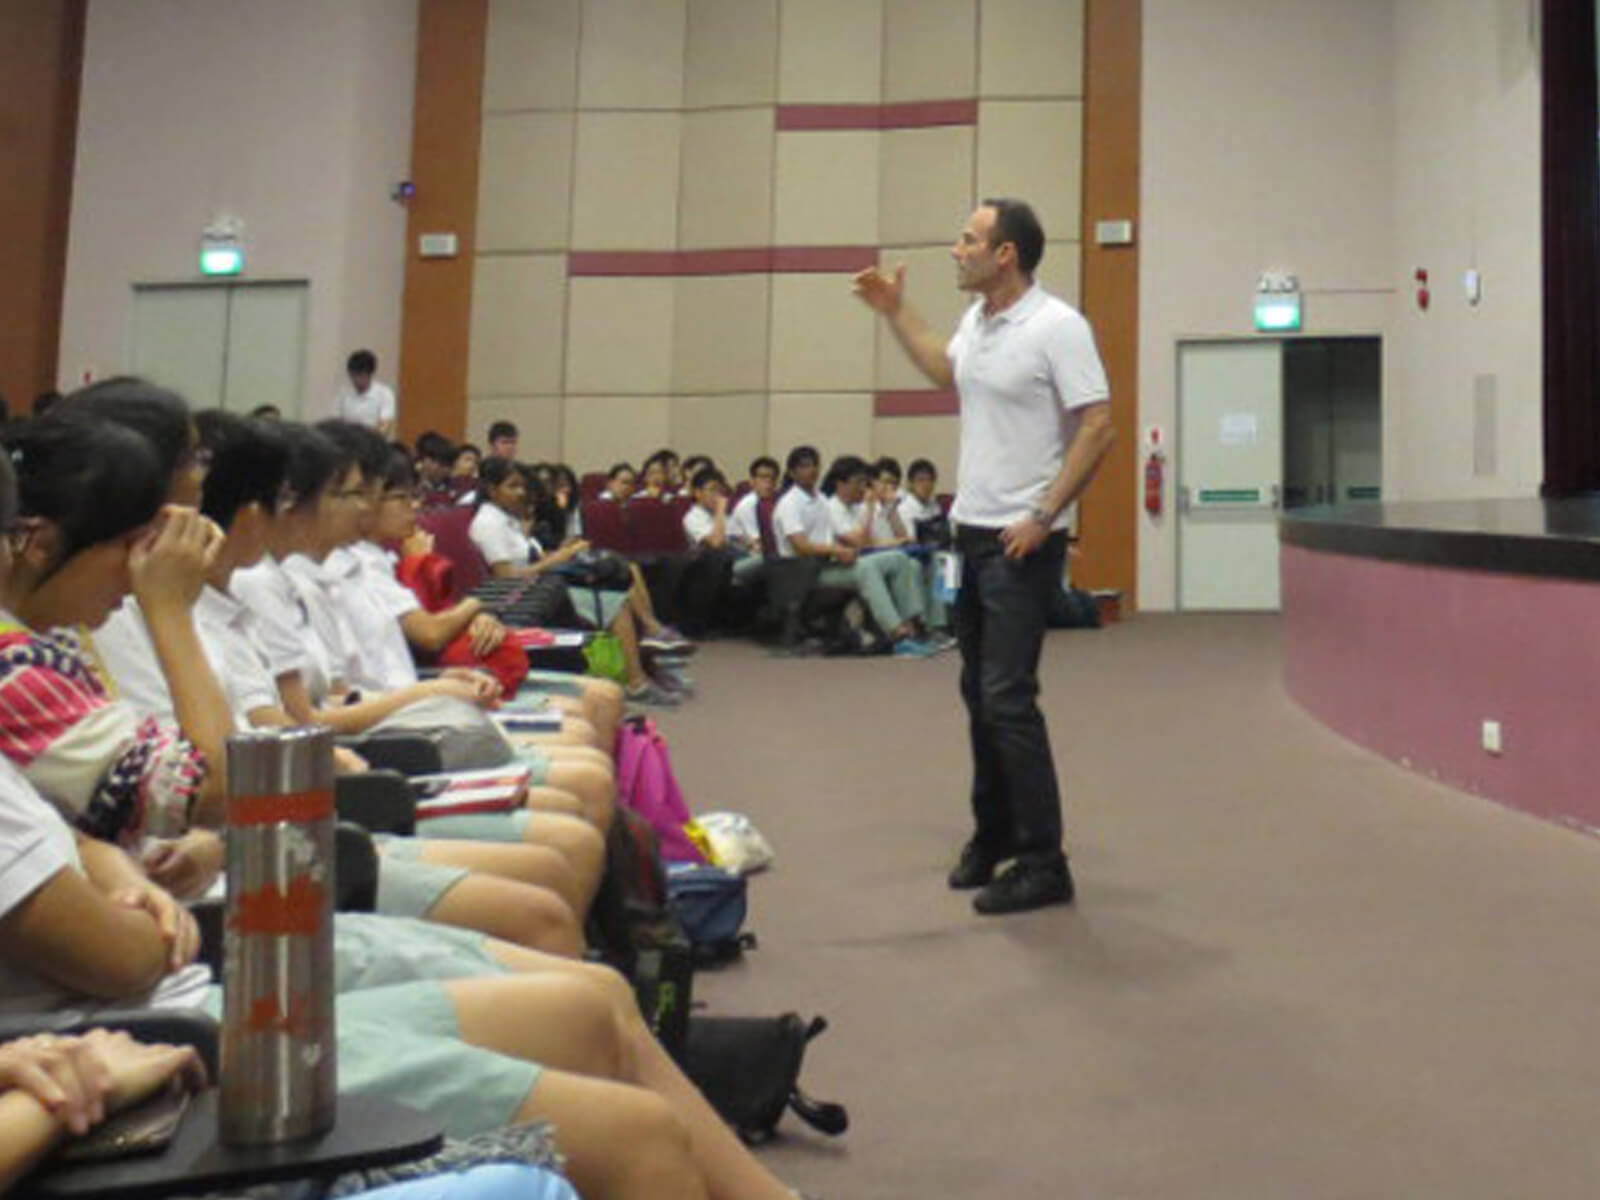 DigiPen CTO Samir Abou Samra speaks to students in a large presentation hall